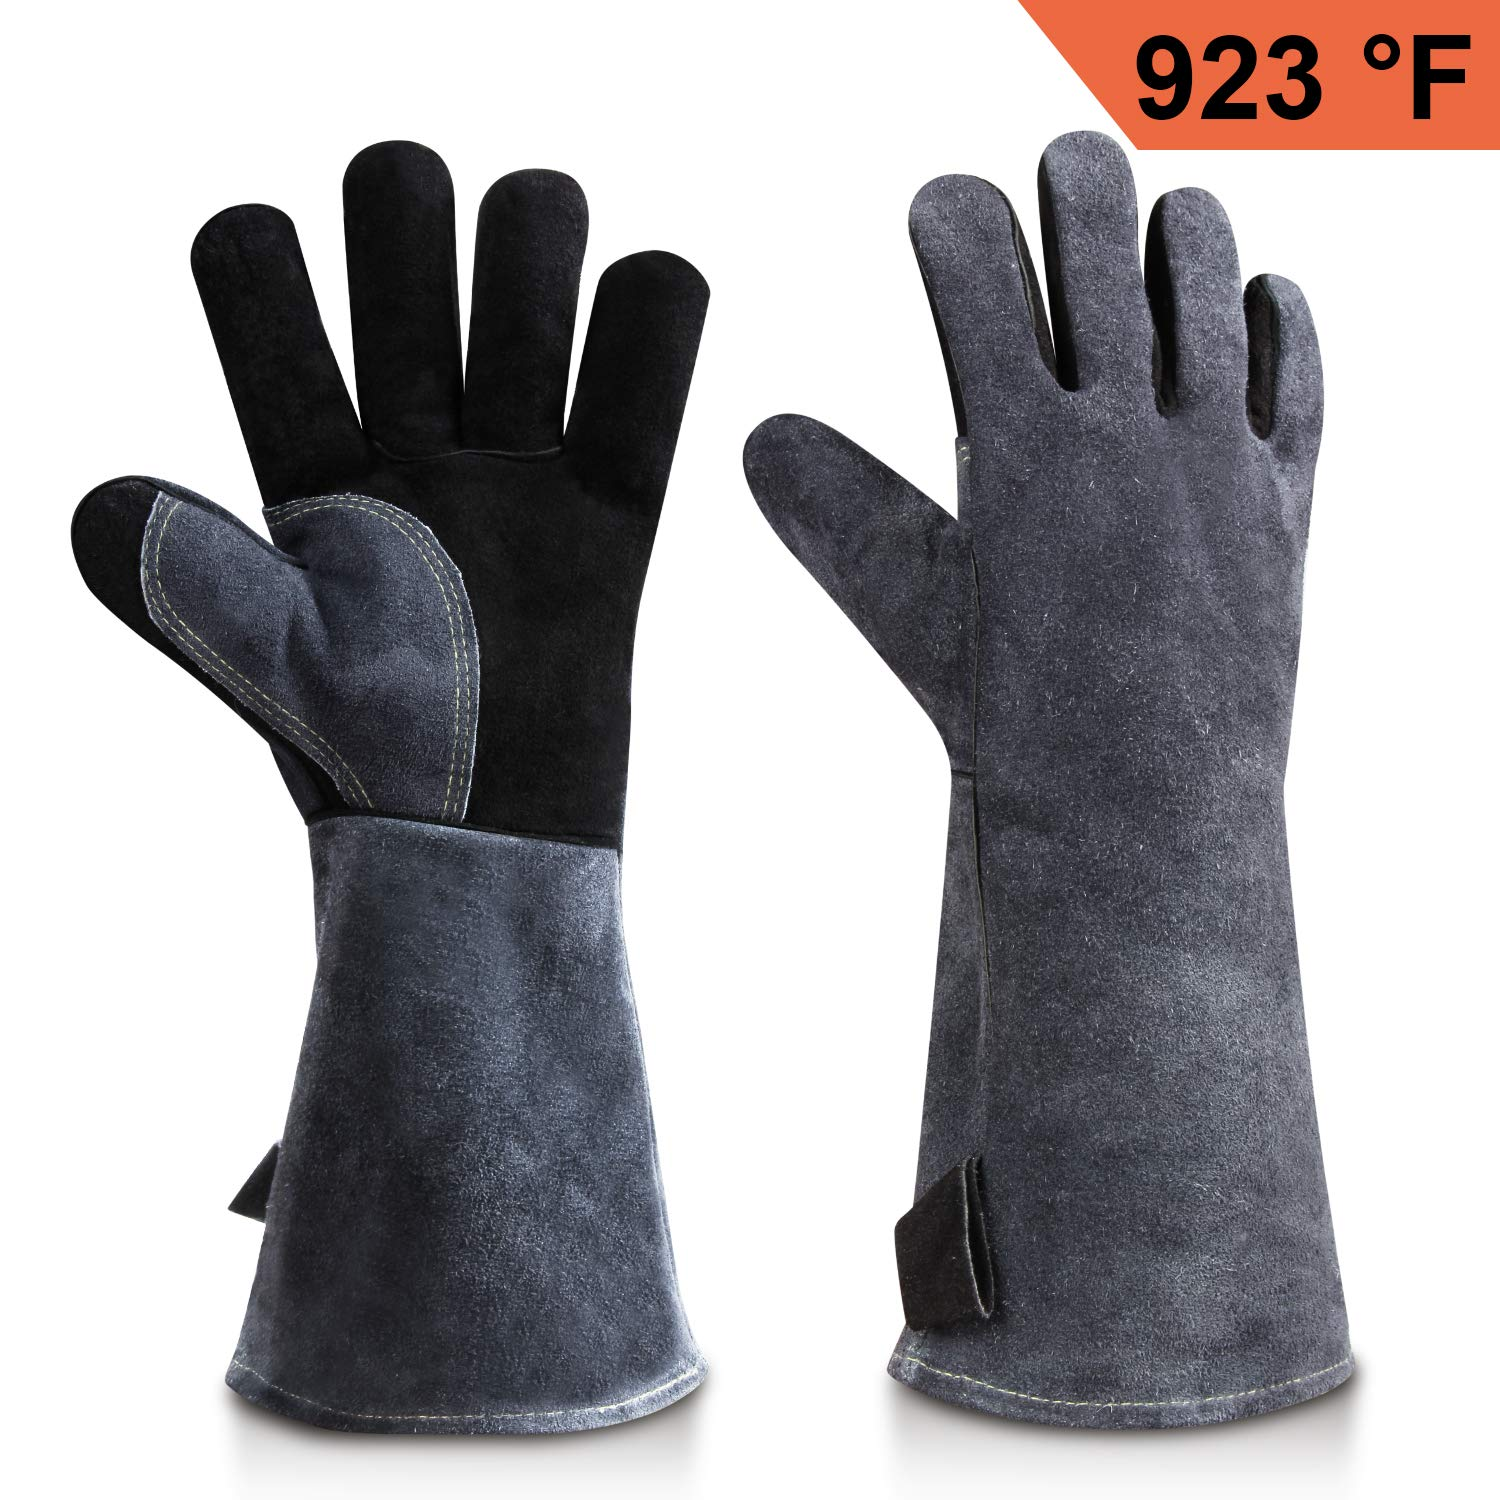 OZERO Welding BBQ Gloves, 932°F Heat Resistant Leather Grill Glove for Tig Welder/Grilling/Barbecue/Oven/Fireplace/Wood Stove - Long Sleeve and Insulated Cotton Lining - Black-gray(16-inch)